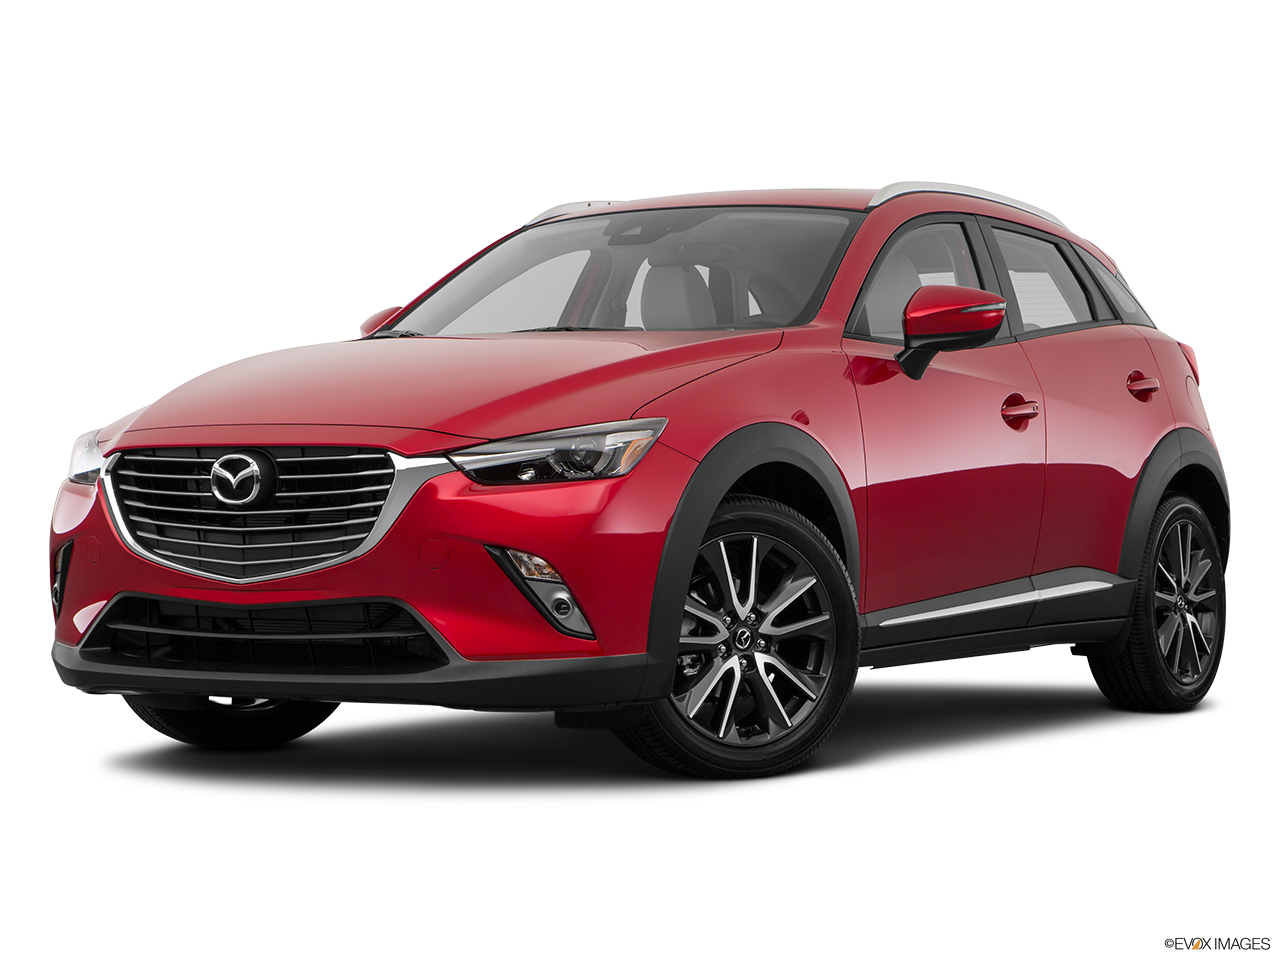 Ford Explorer 2017 Lease >> Lease a 2018 Mazda CX-3 GX Automatic 2WD in Canada | Canada LeaseCosts